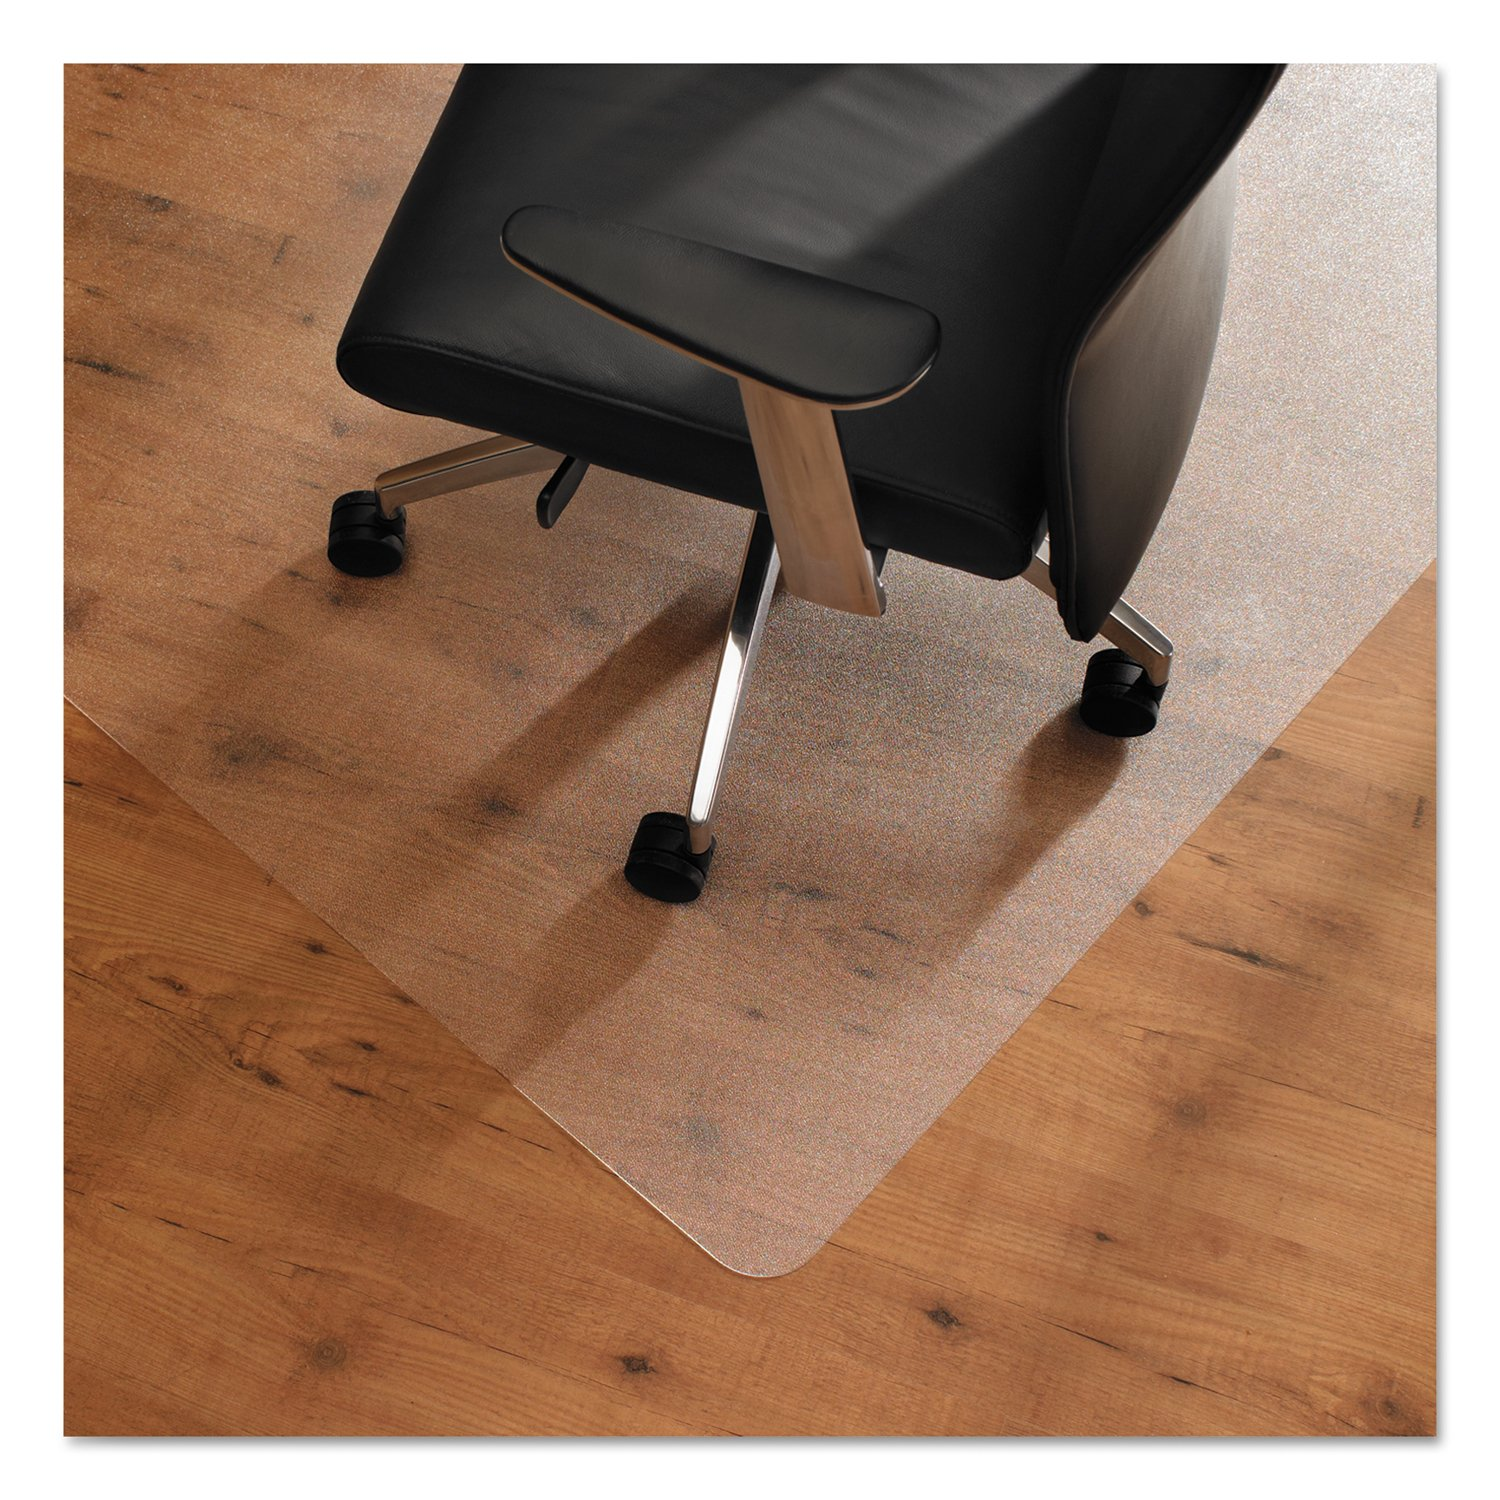 amazon com cleartex unomat anti slip chair mat for polished